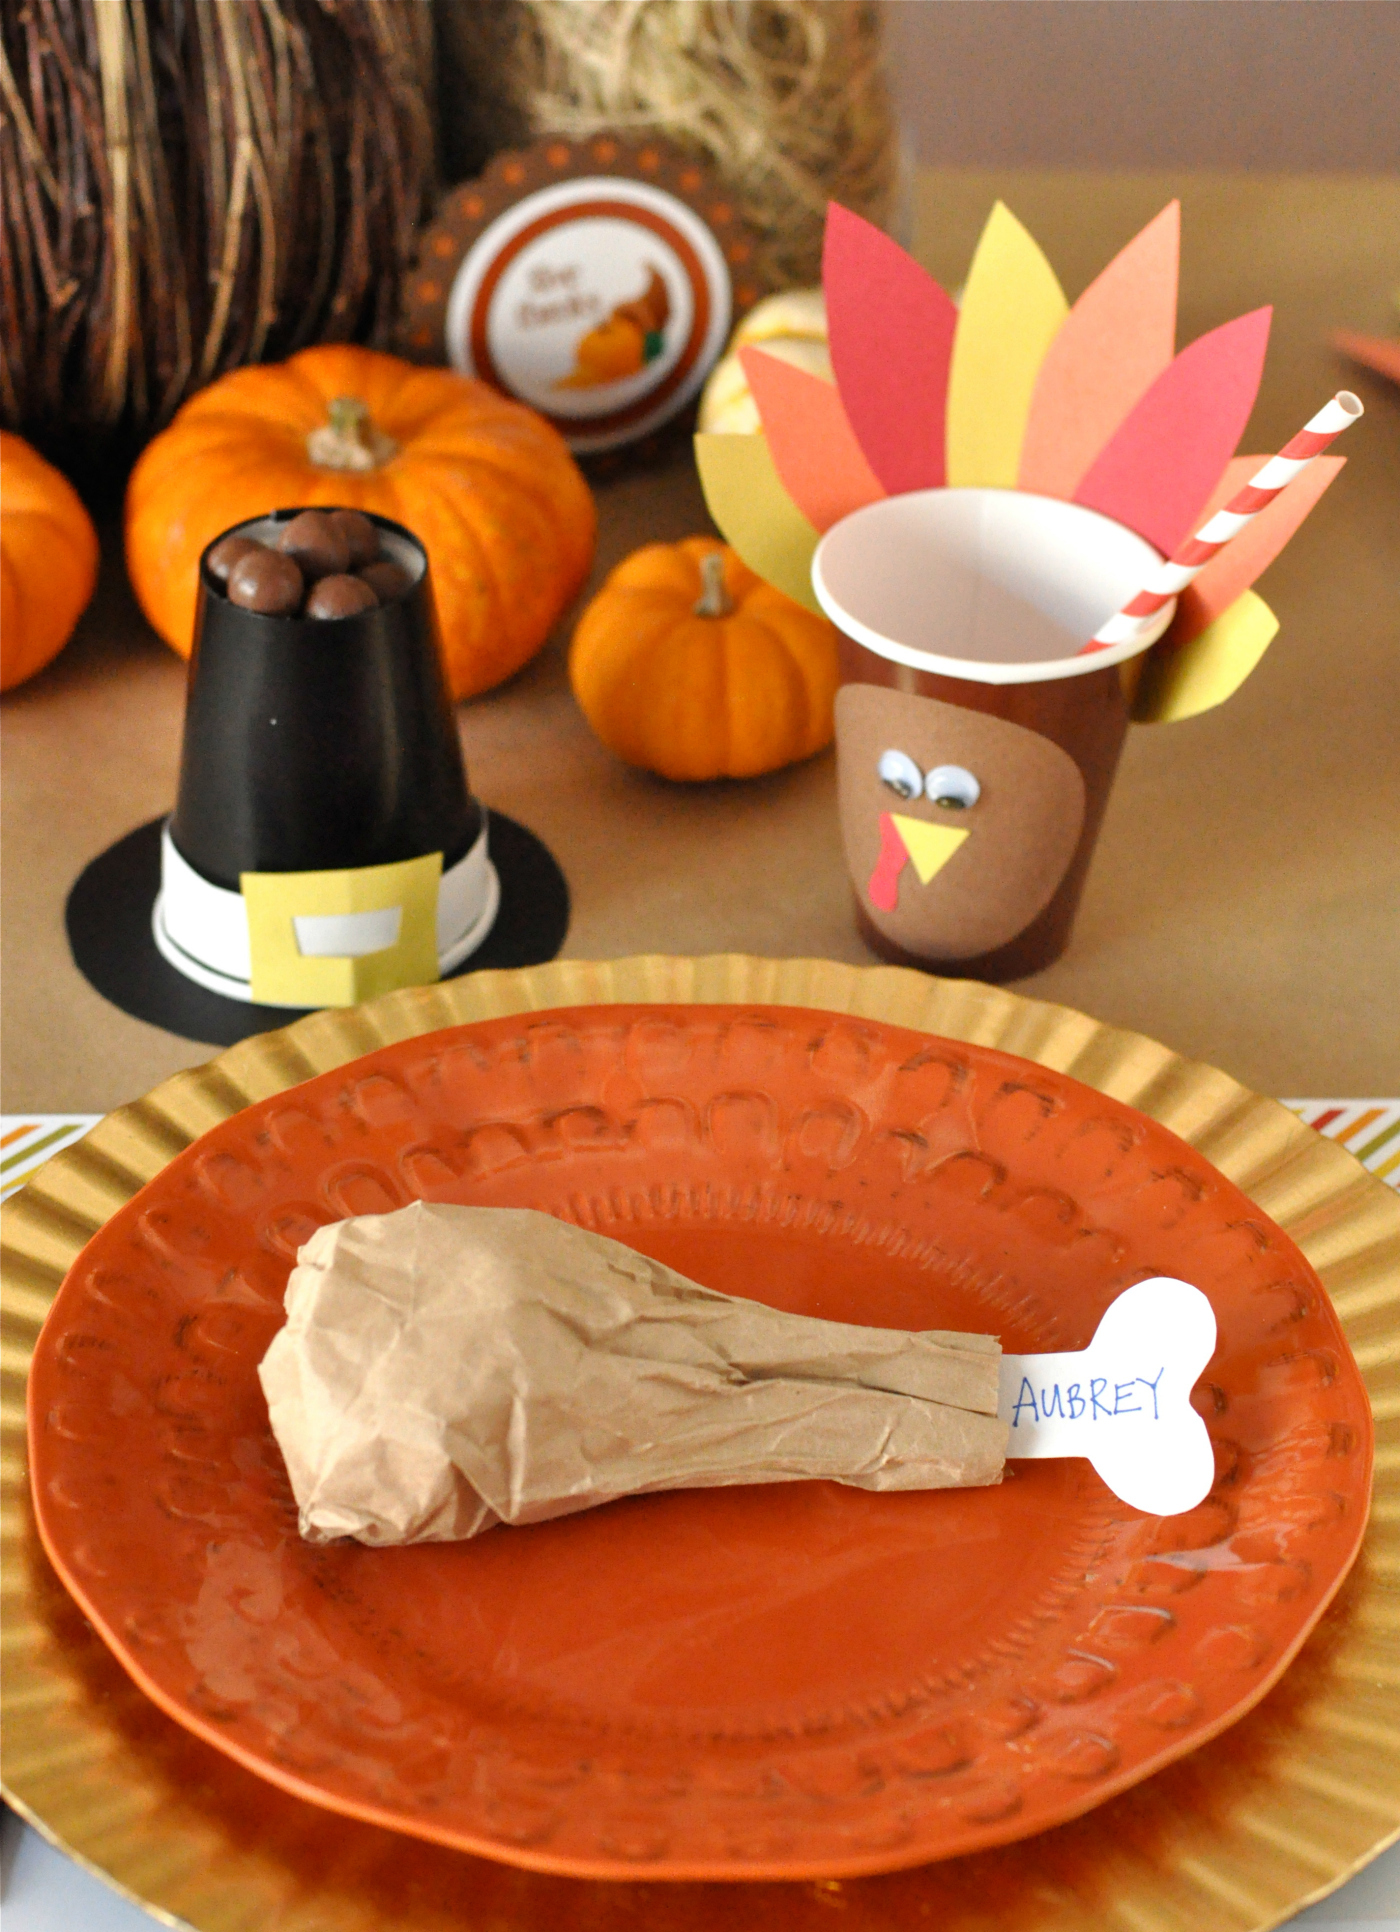 We LOVE the idea of setting your kids table with these adorable creative Thanksgiving crafts. It's a great way to make the little ones feel special and excited about their seating arrangement. Sometimes kids don't like the idea of sitting away from their parents during dinner, especially when there are a lot of new people around. So this is the perfect way to get them on board with the whole kids versus adult table arrangement.  Click here to see more images.